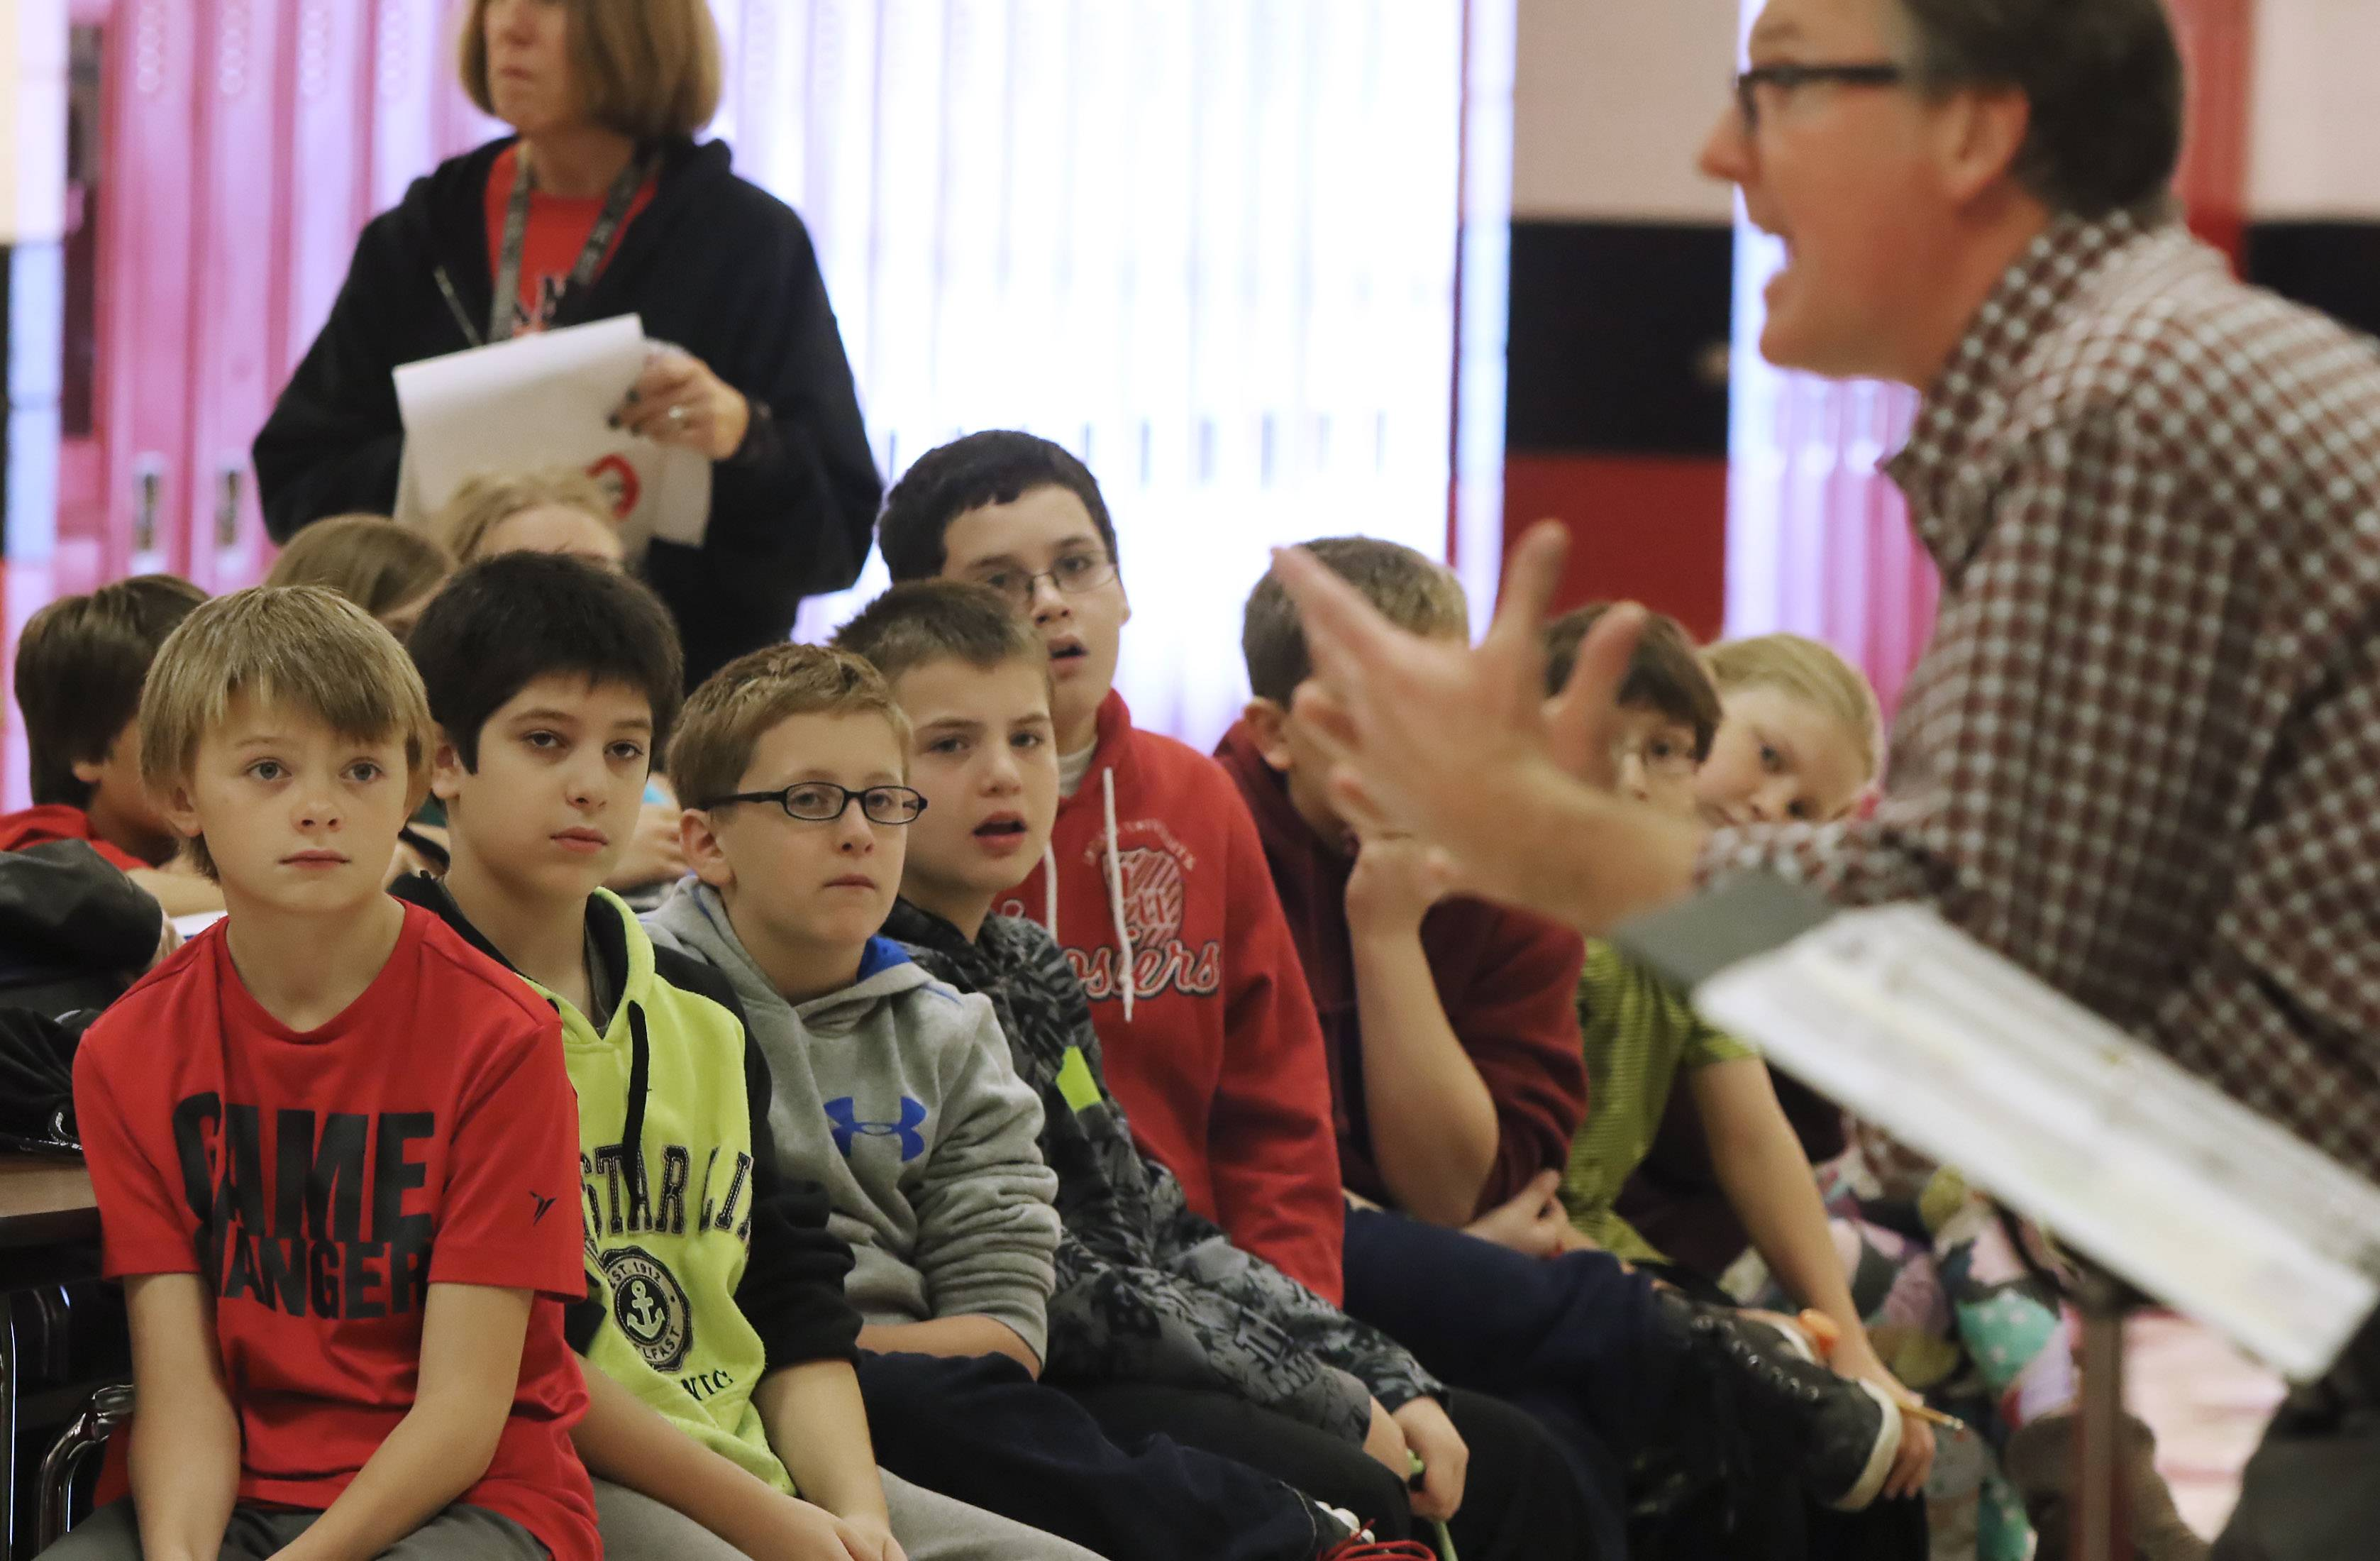 Middle school students listen to author Tim Shoemaker as he speaks about being a hero Tuesday at Stanton School in Fox Lake. Shoemaker writes mystery books intended for middle school students.